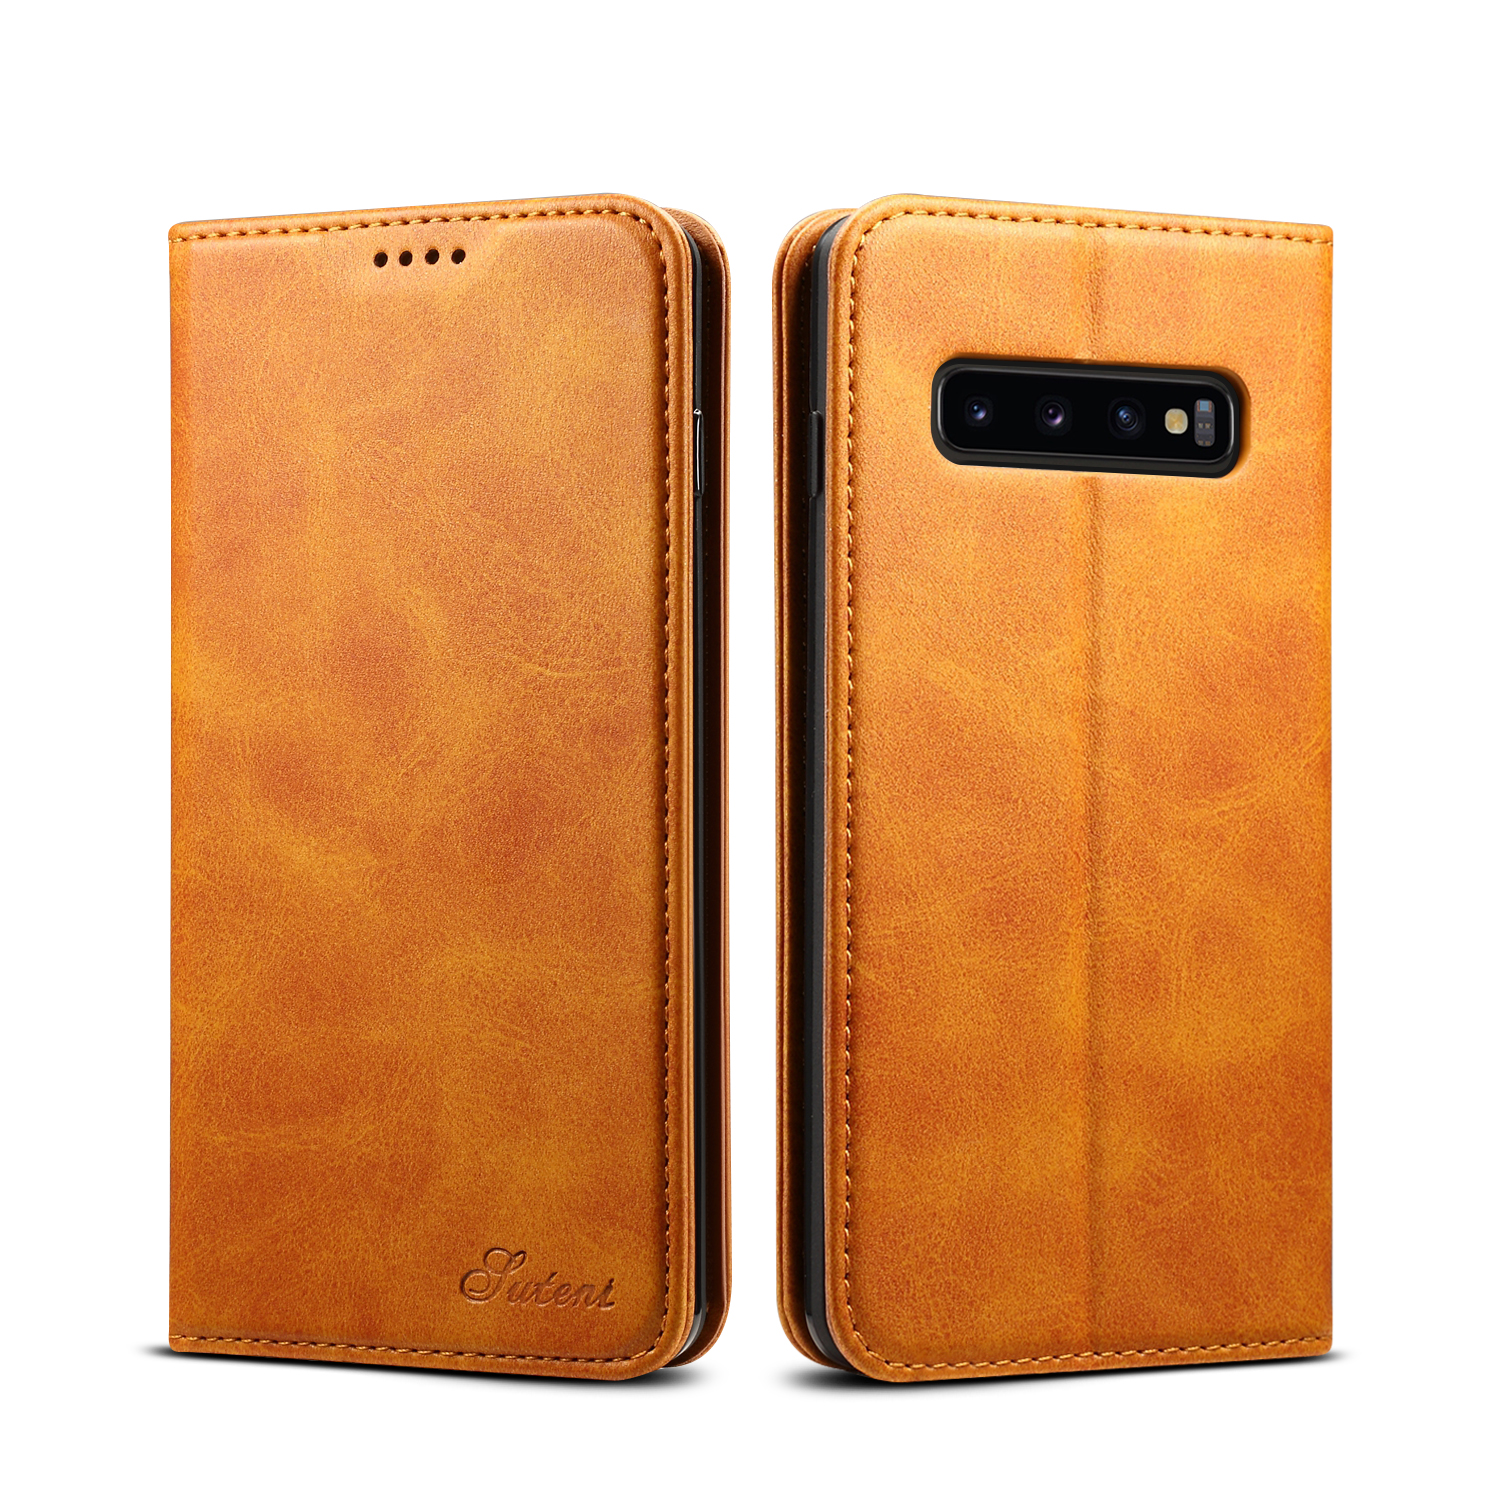 Bakeey Magnetic Flip Protective Case For Samsung Galaxy S10 6.1 Inch Wallet Card Slot Kicktand Cover